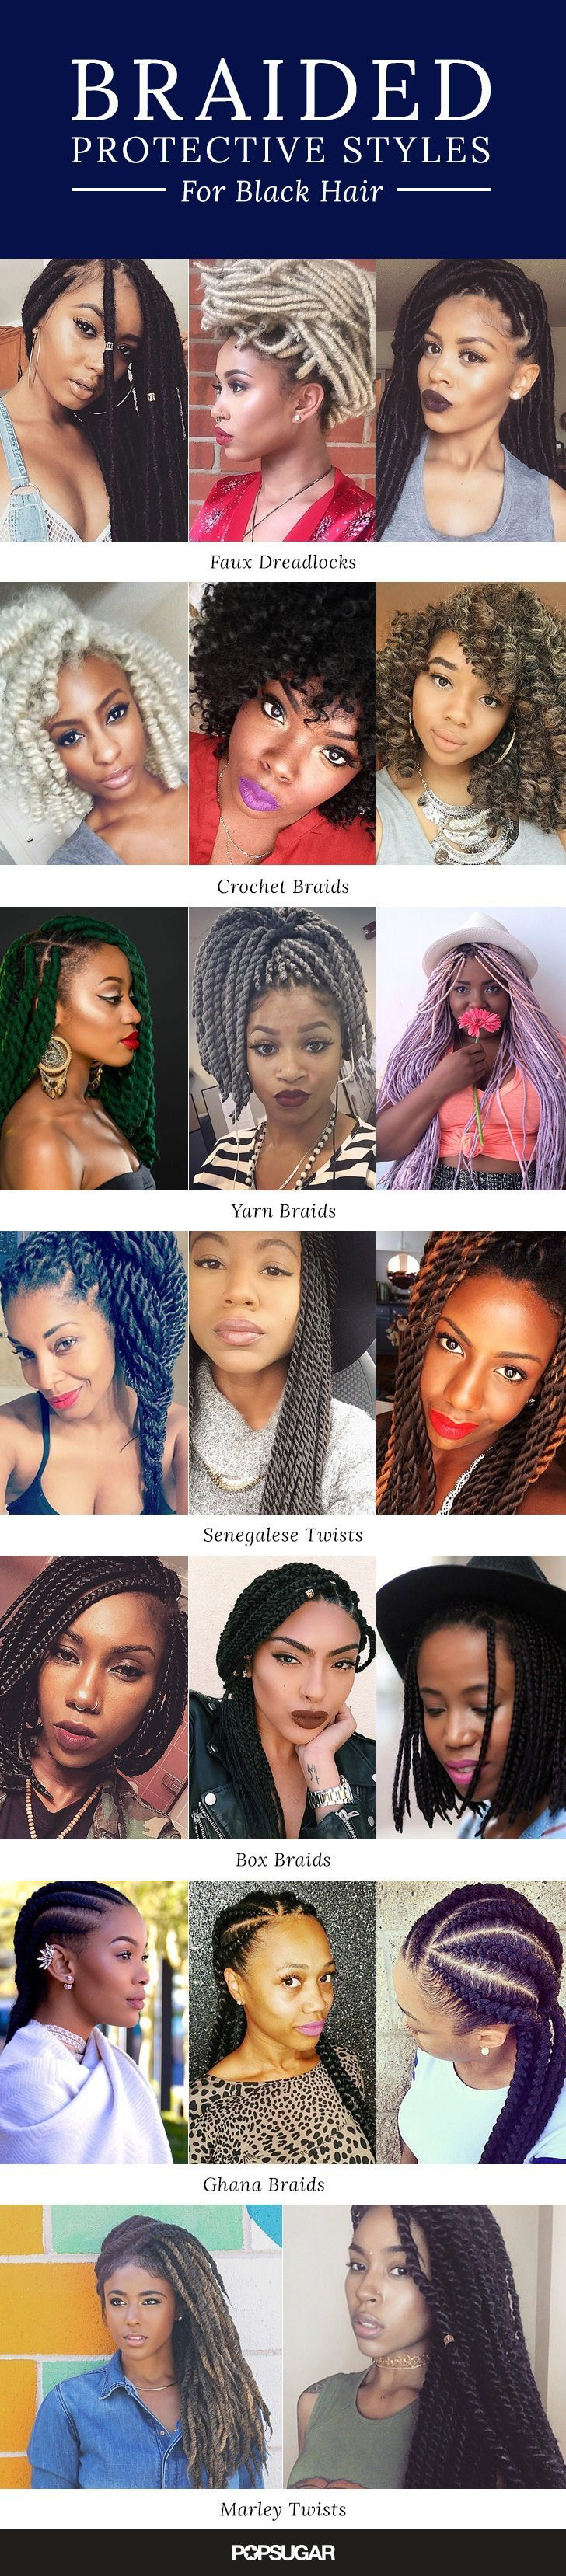 Looking for a new protective hairstyle for natural hair? These braids for black women add extensions for a longer-lasting style. These braided looks with weave are easy to maintain. There are twists, dreadlocks, crochet braids, Senegalese twists, box braids, Ghana braids, cornrows, and marley twists.